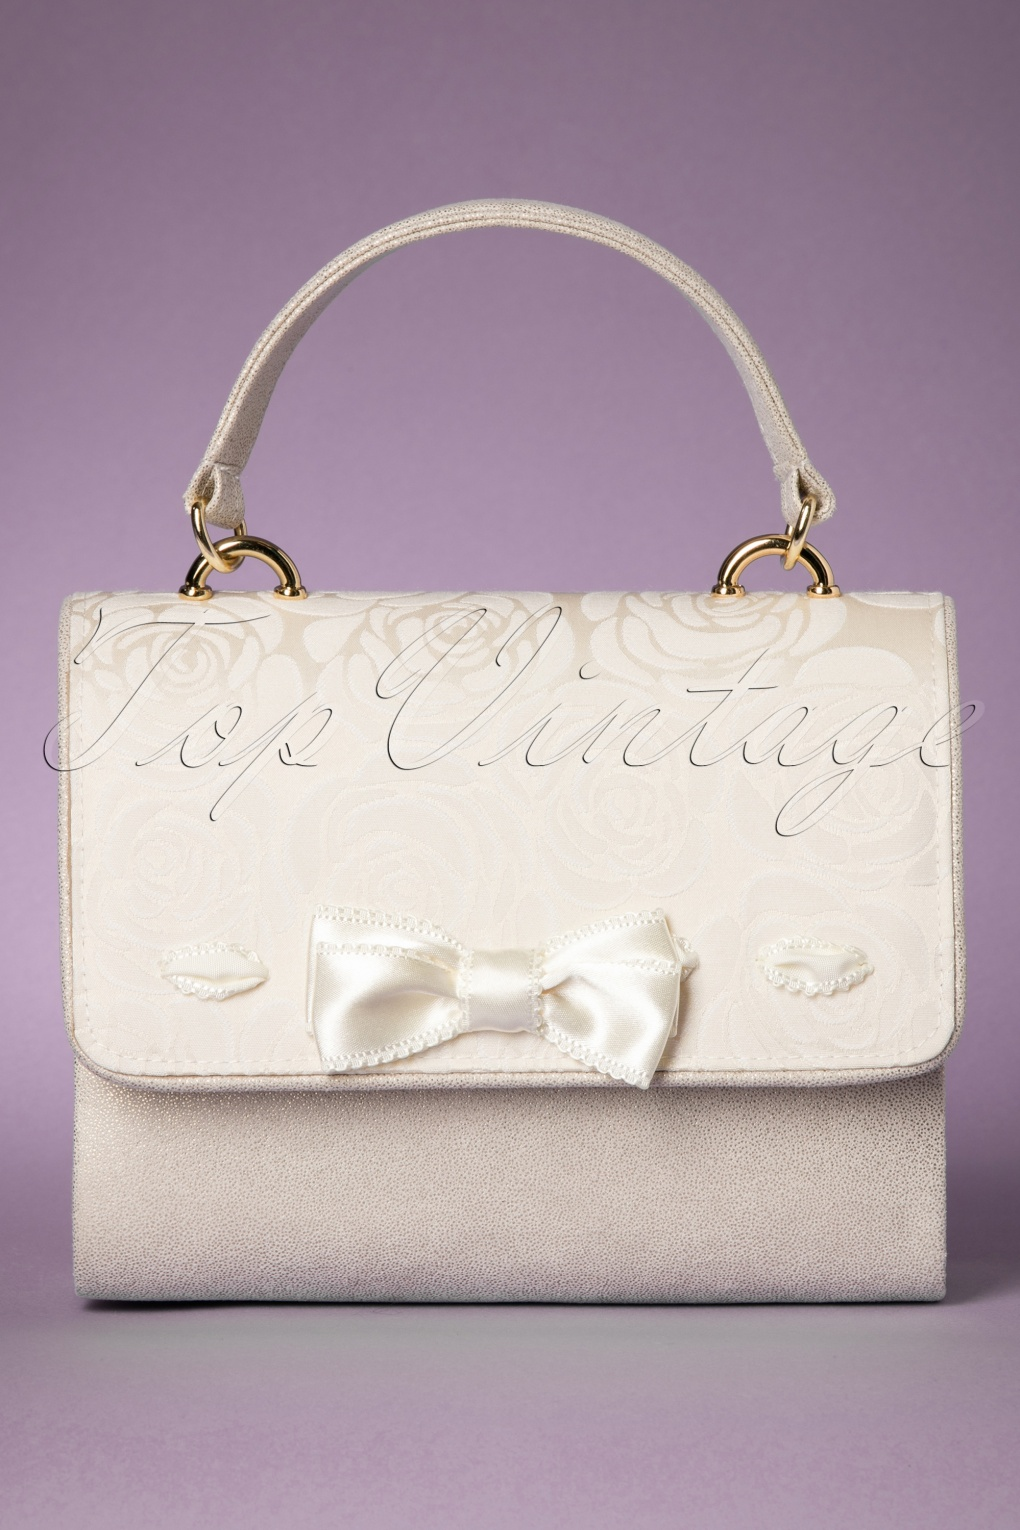 Vintage & Retro Handbags, Purses, Wallets, Bags 60s San Marino Handbag in Cream £48.80 AT vintagedancer.com